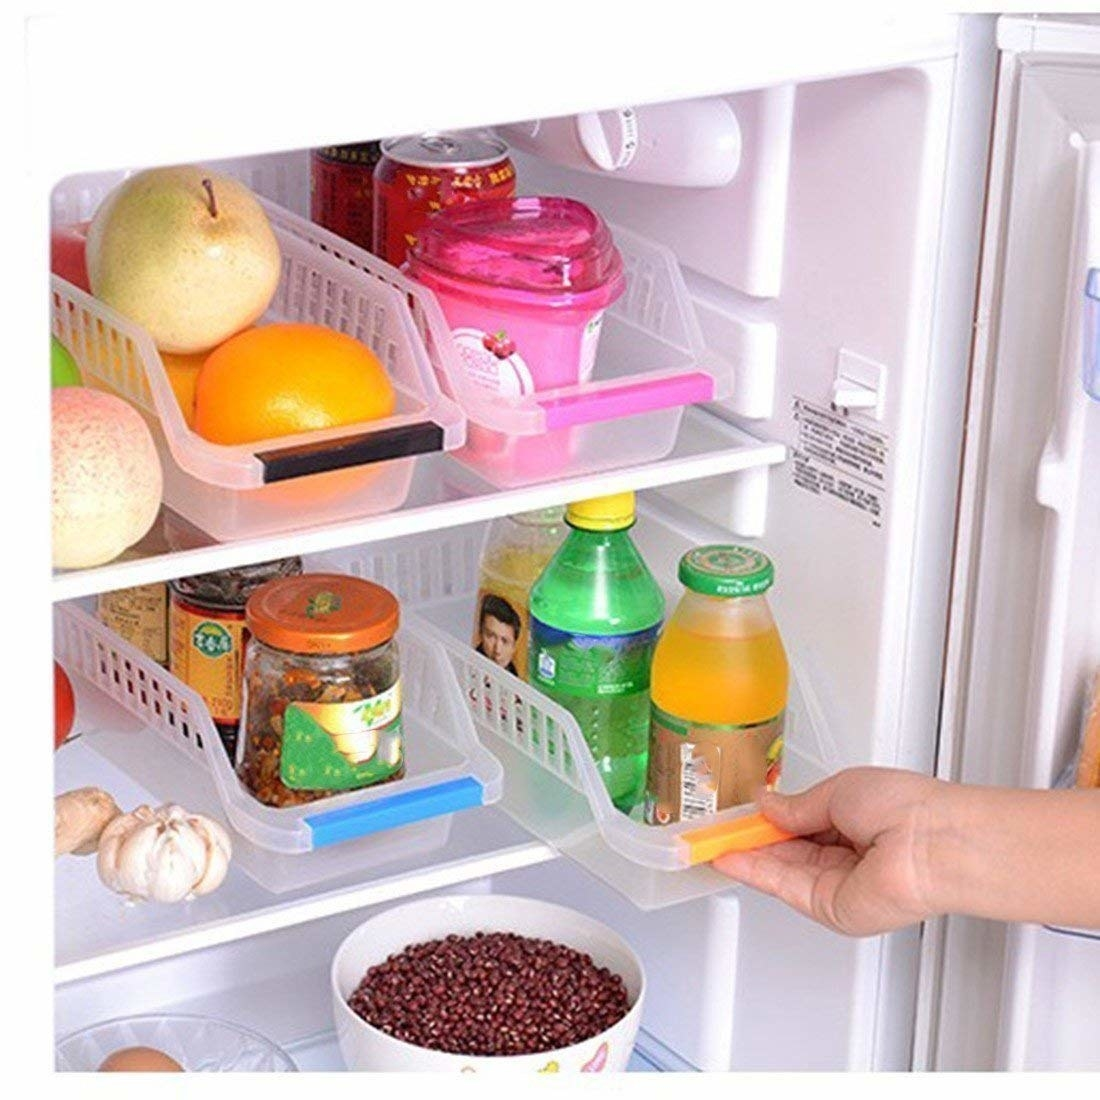 A hand pulling out a fridge organiser. They are used to hold fruits, jars, juice bottles.